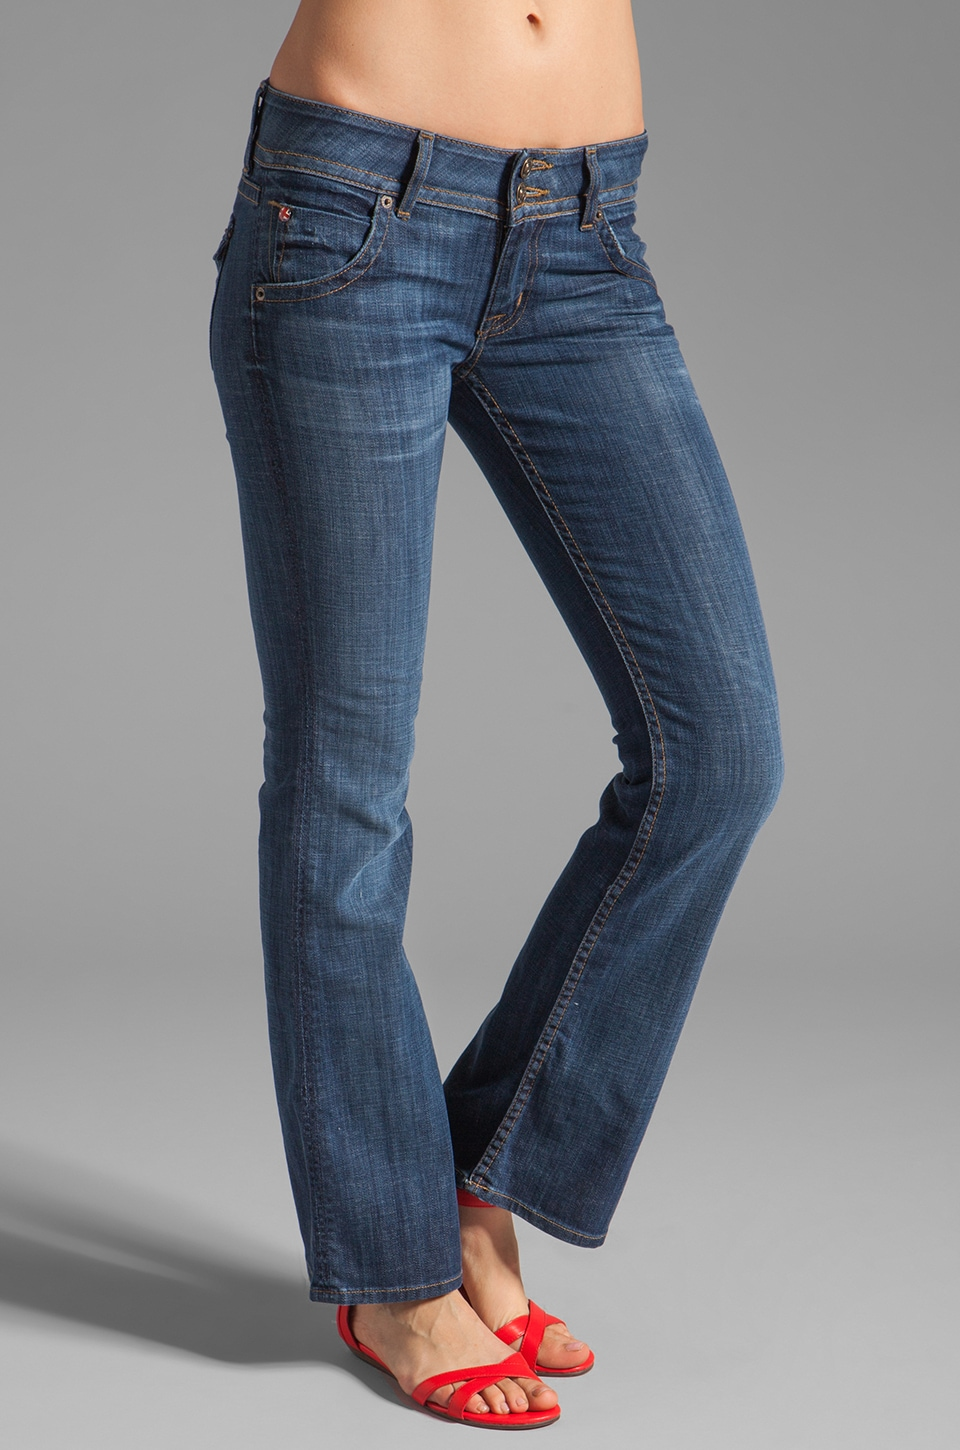 Hudson Jeans Signature Boot Cut Jeans in Saville